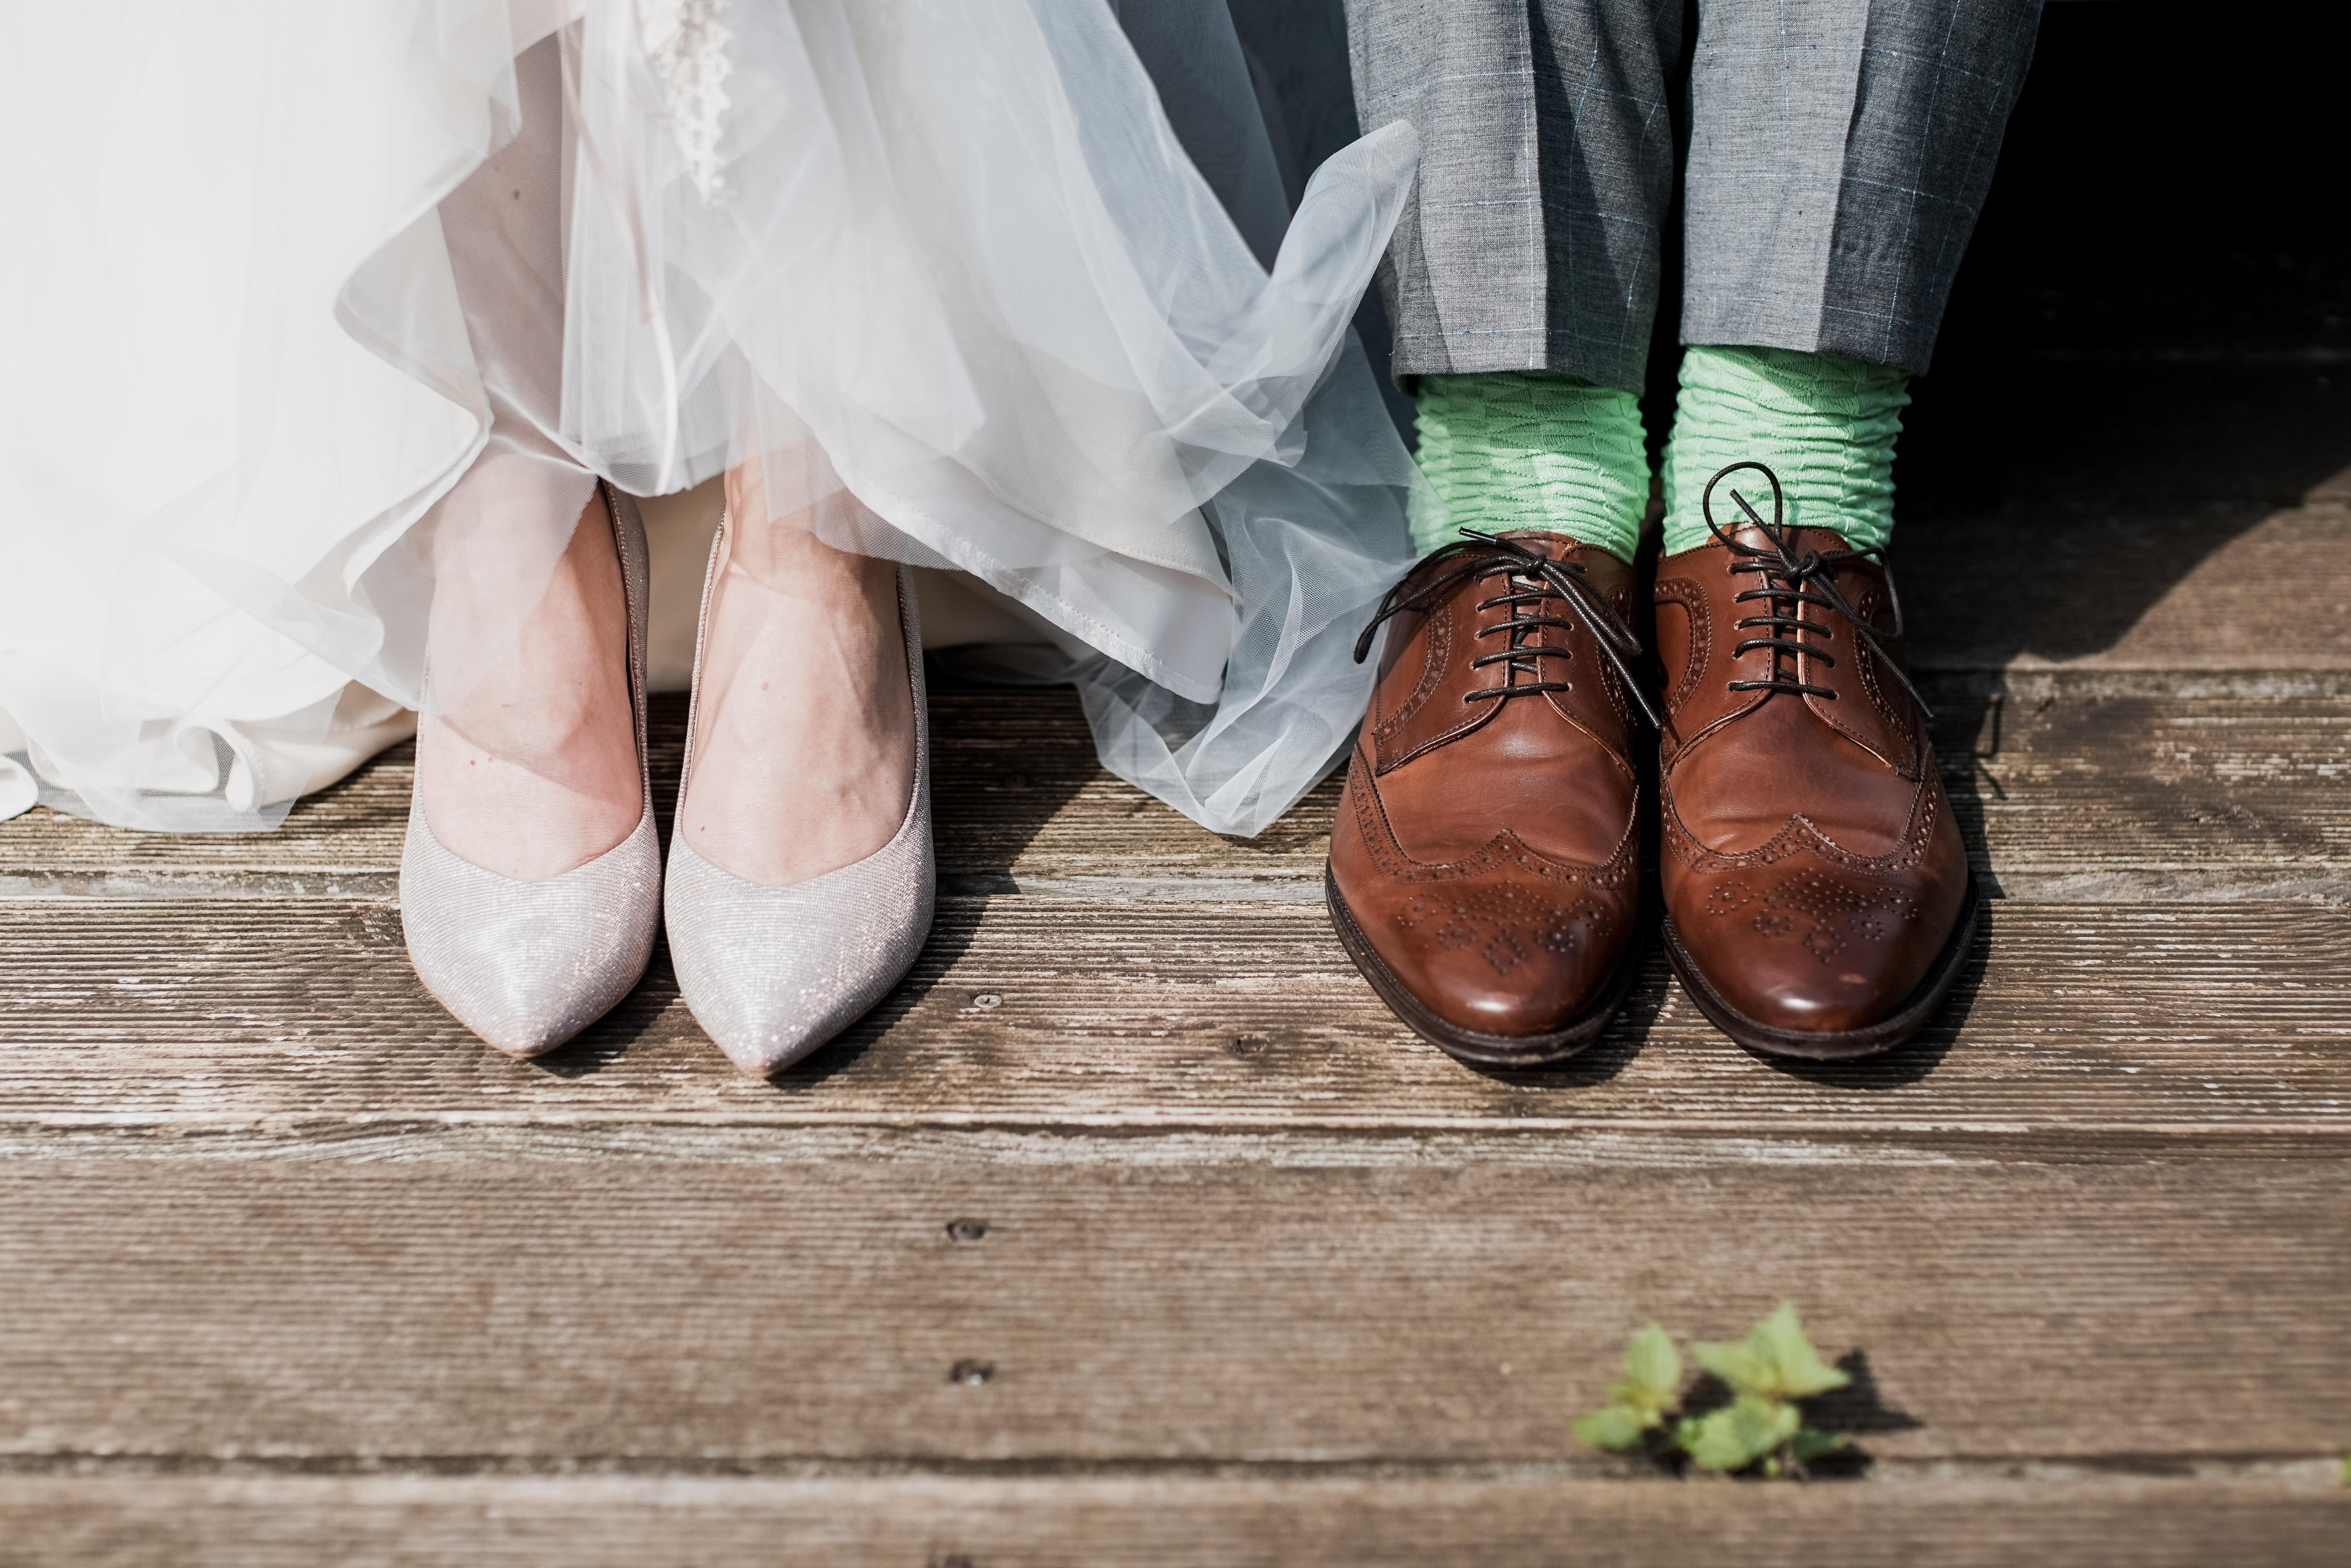 Coronavirus: What to Know About Postponing Your Wedding Thumbnail